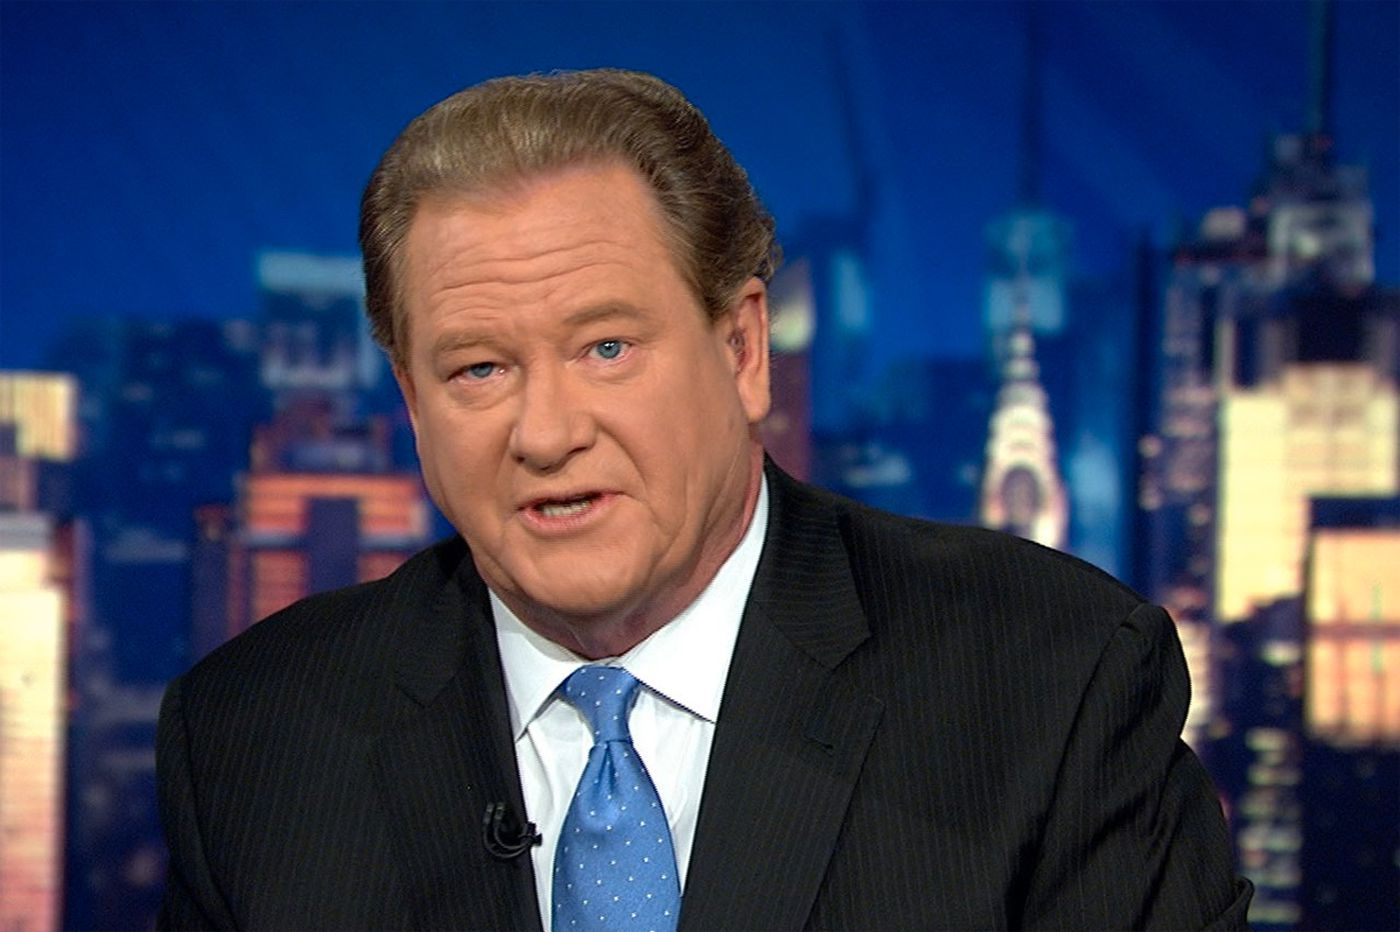 Ed Schultz, former MSNBC host and outspoken radio personality, has died